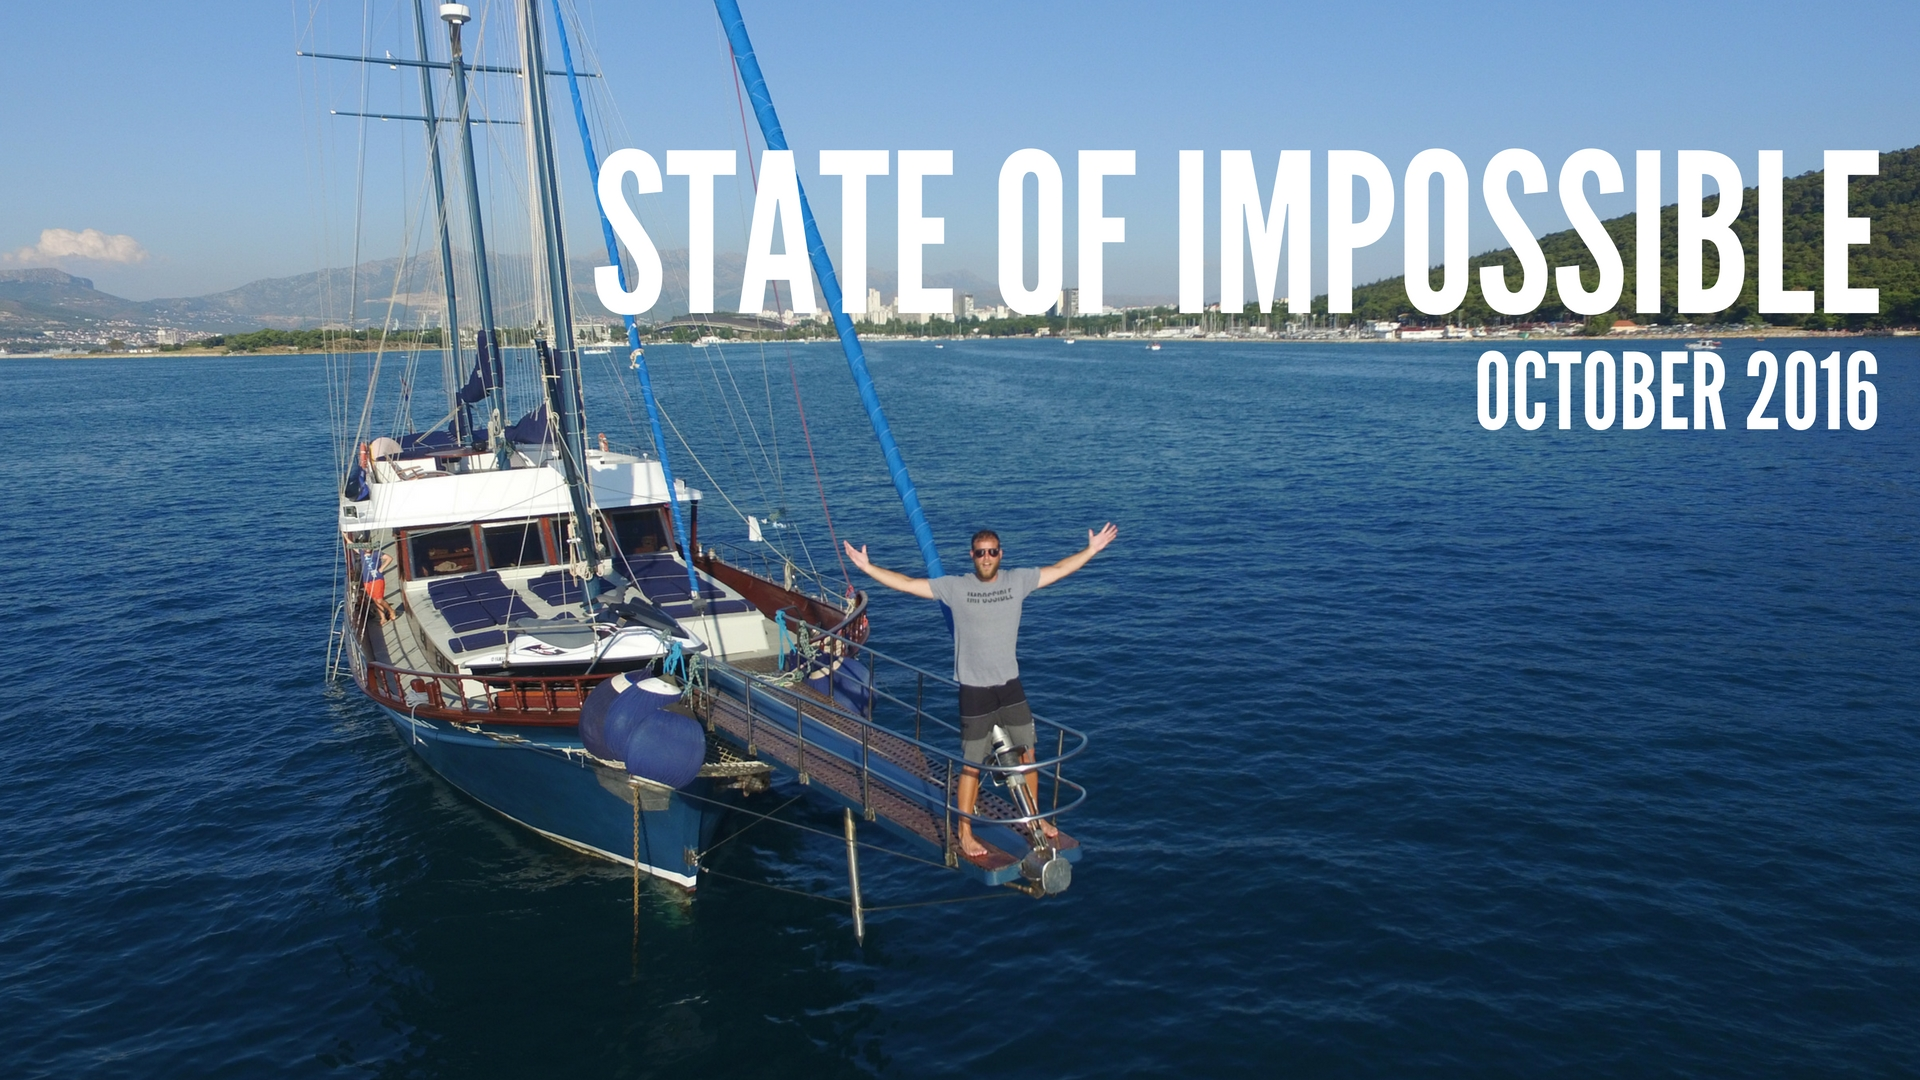 state-of-impossible